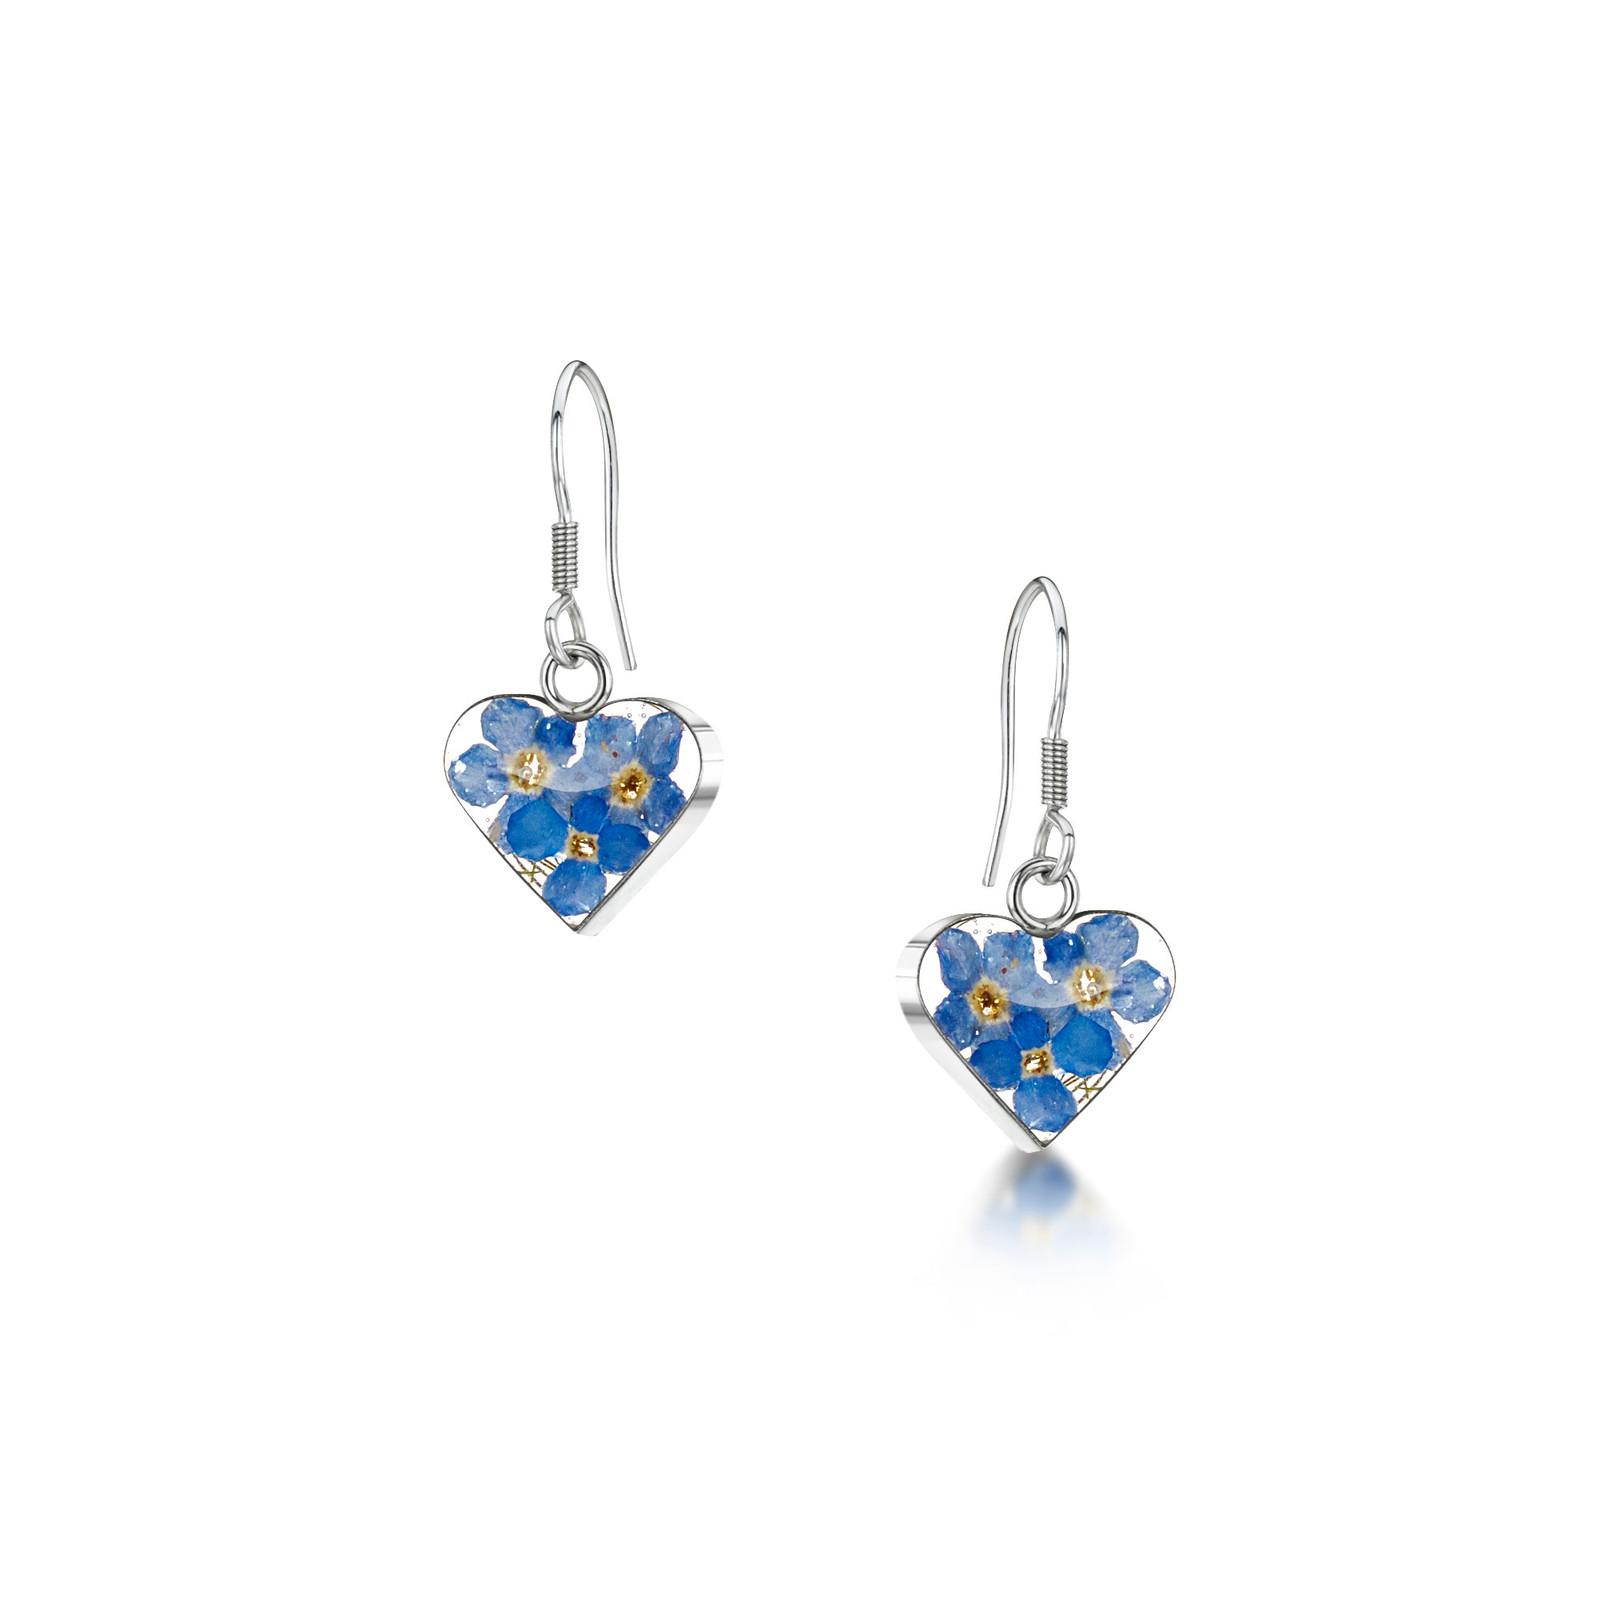 FLOWER HEART EARRINGS